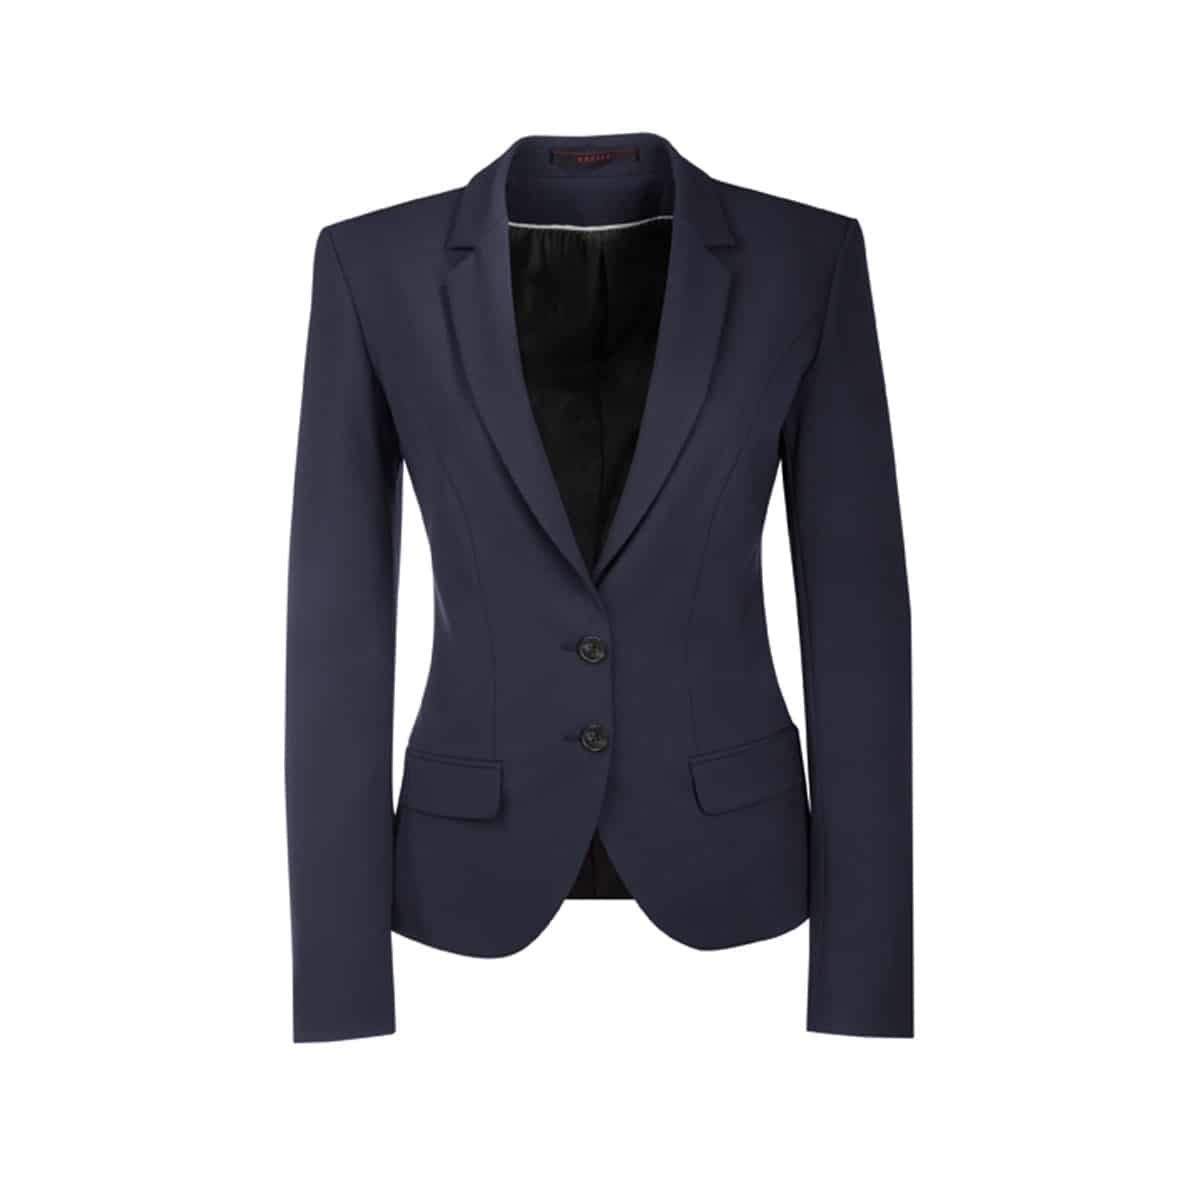 blazer femme court cintr de qualit sur spiq. Black Bedroom Furniture Sets. Home Design Ideas